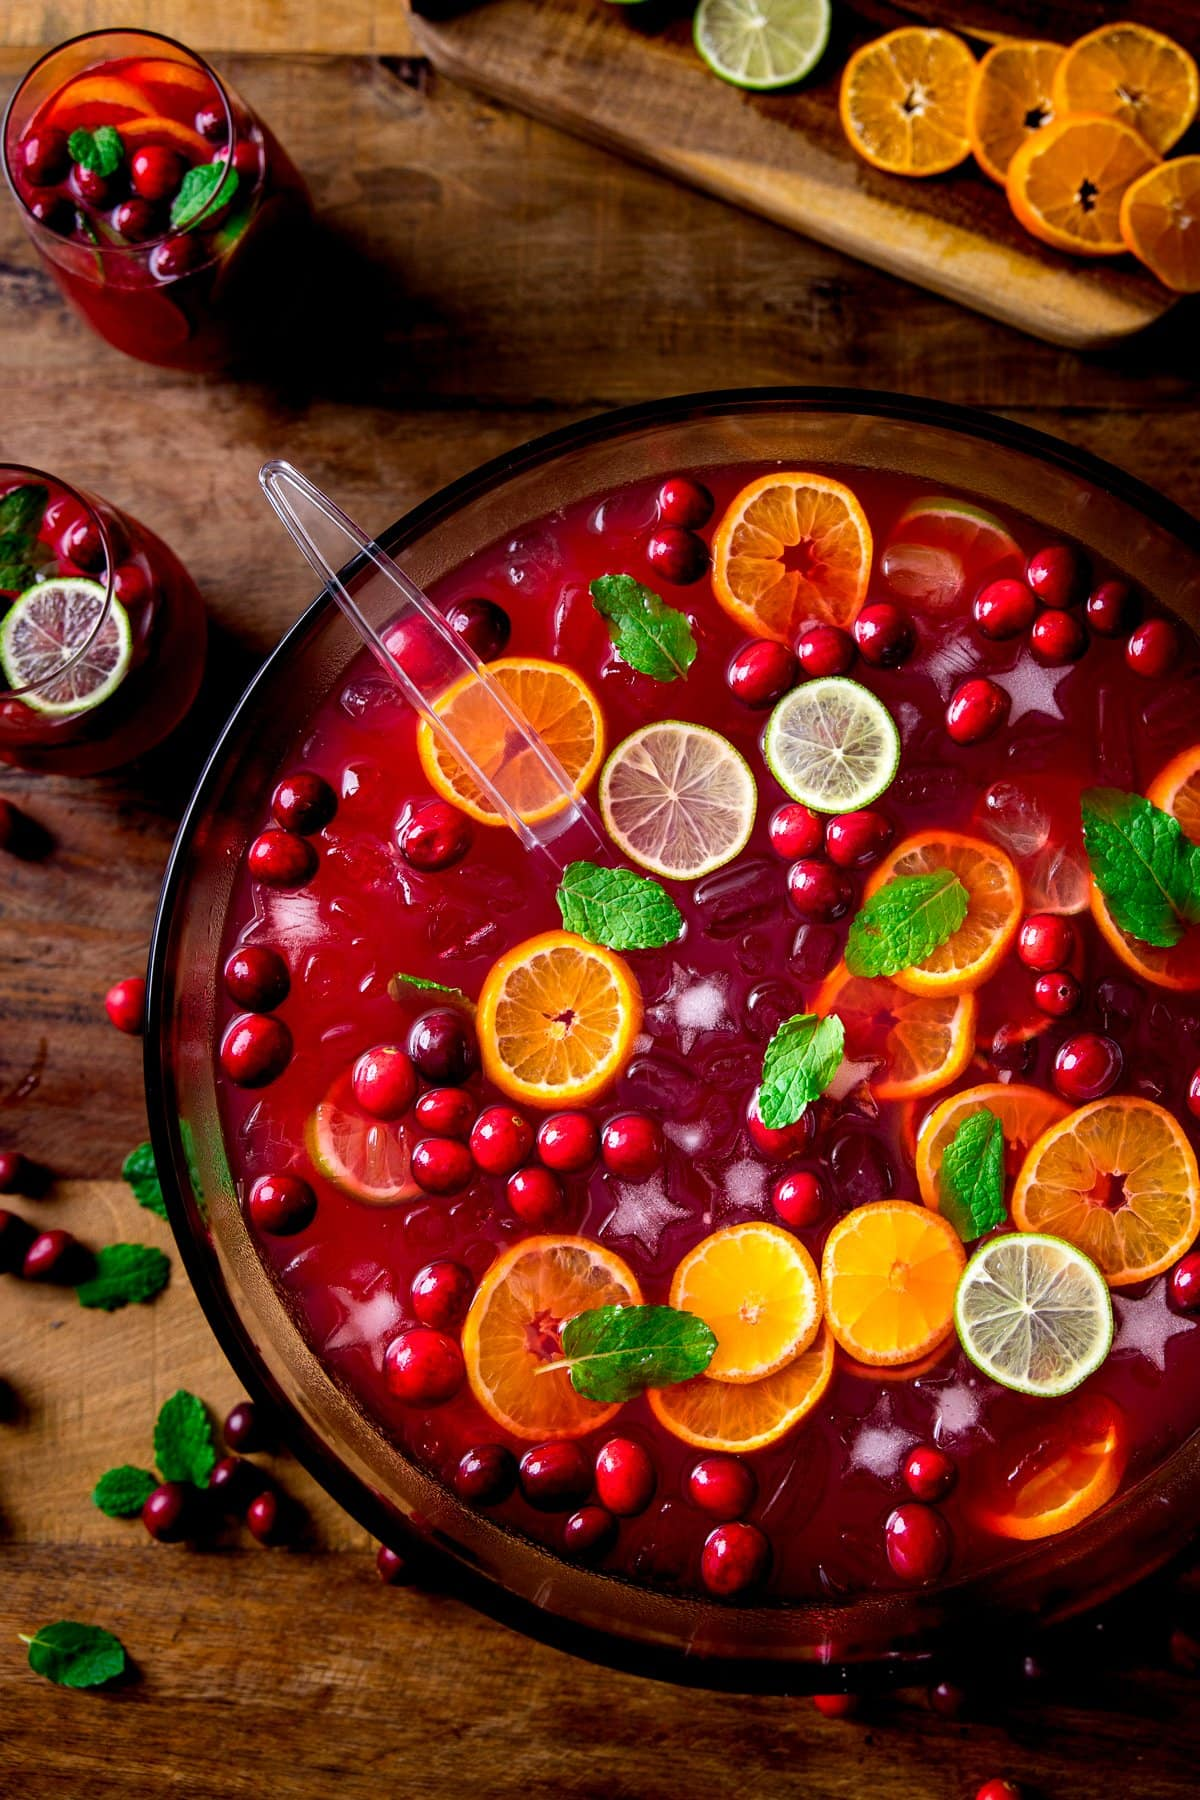 Festive Punch in a bowl on a wooden table. Punch is topped with slices of citrus fruits and cranberries